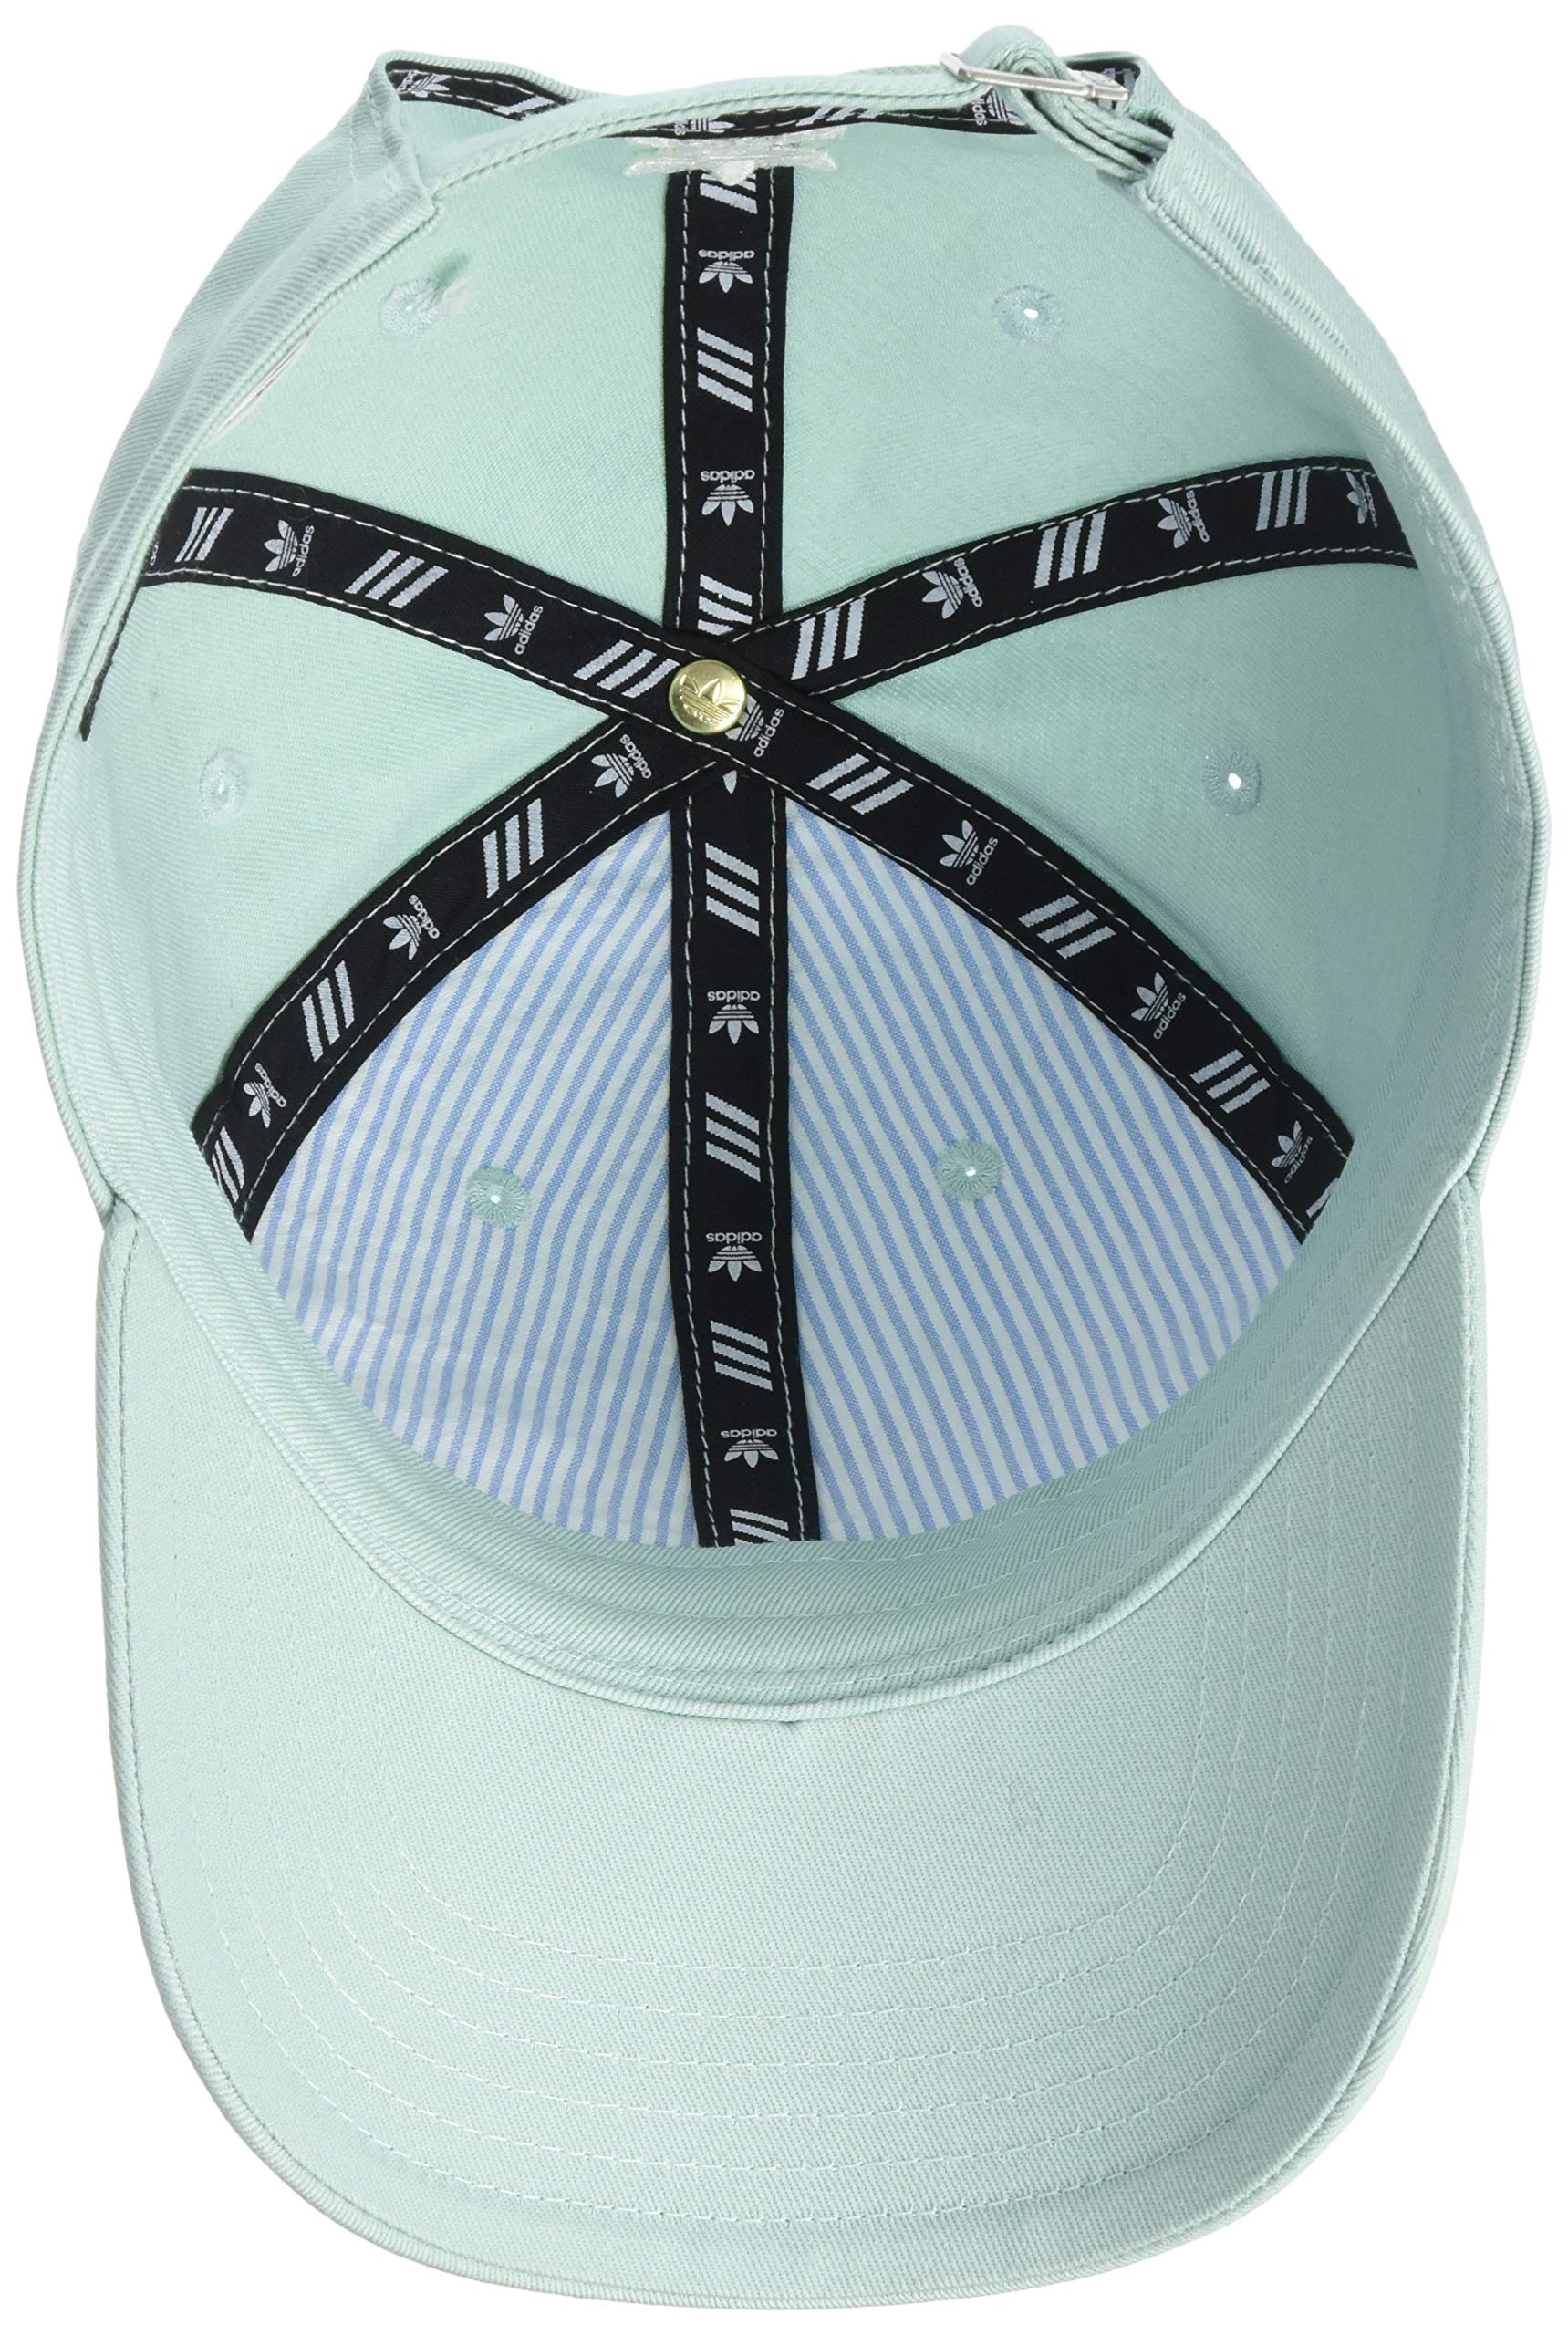 adidas Women's Originals Outline Logo Relaxed Adjustable Cap, Ash Green/White, One Size by adidas (Image #3)